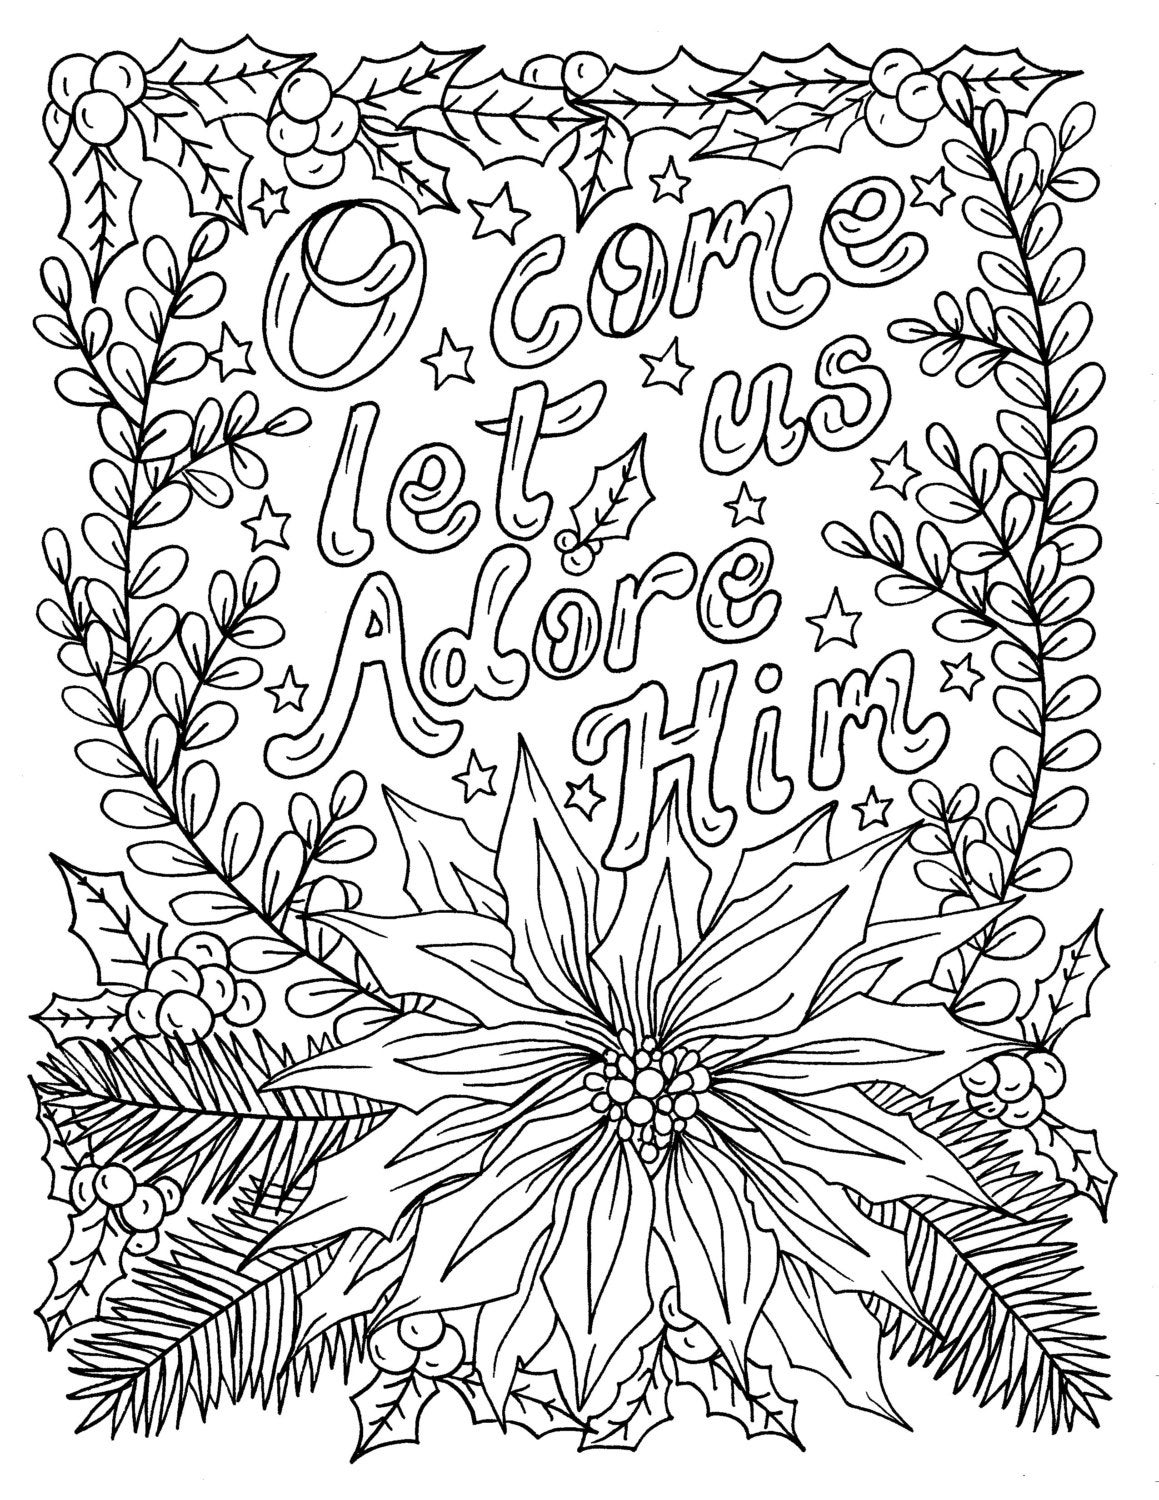 Christian Christmas Coloring Page Adult Coloring Books Art